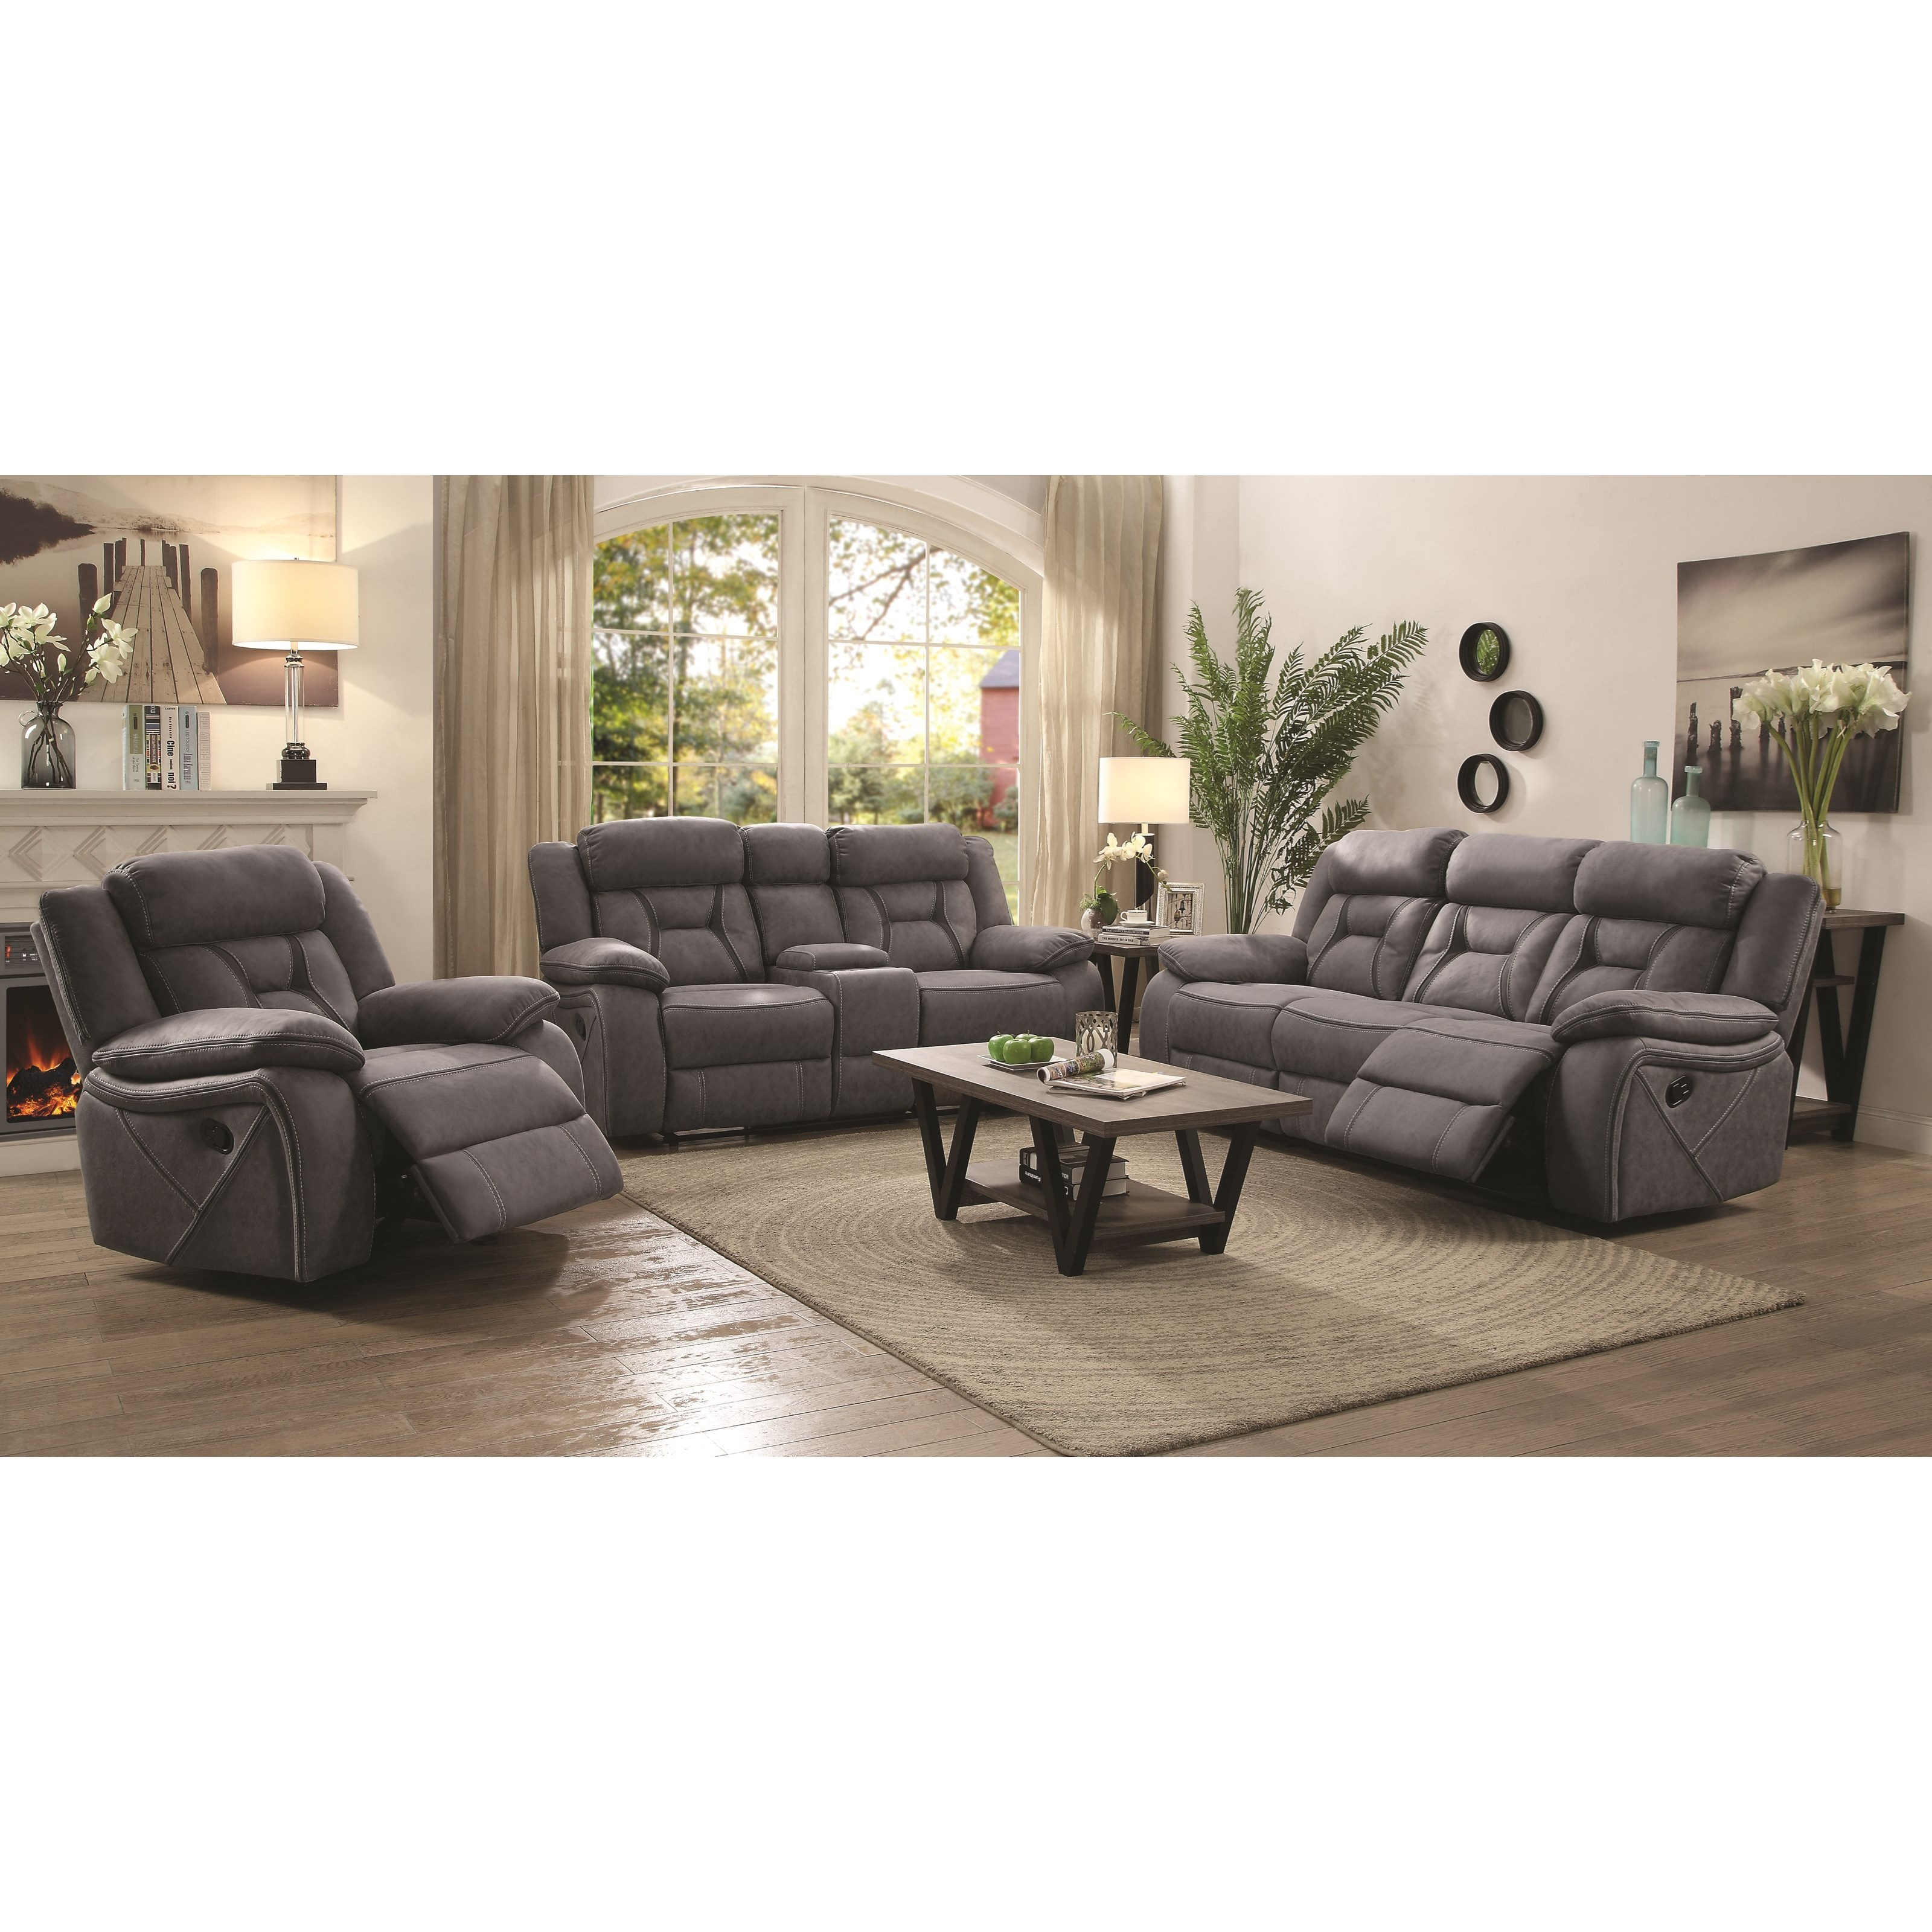 Coaster houston 2pc reclining sofa loveseat set dallas for Living room furniture houston texas